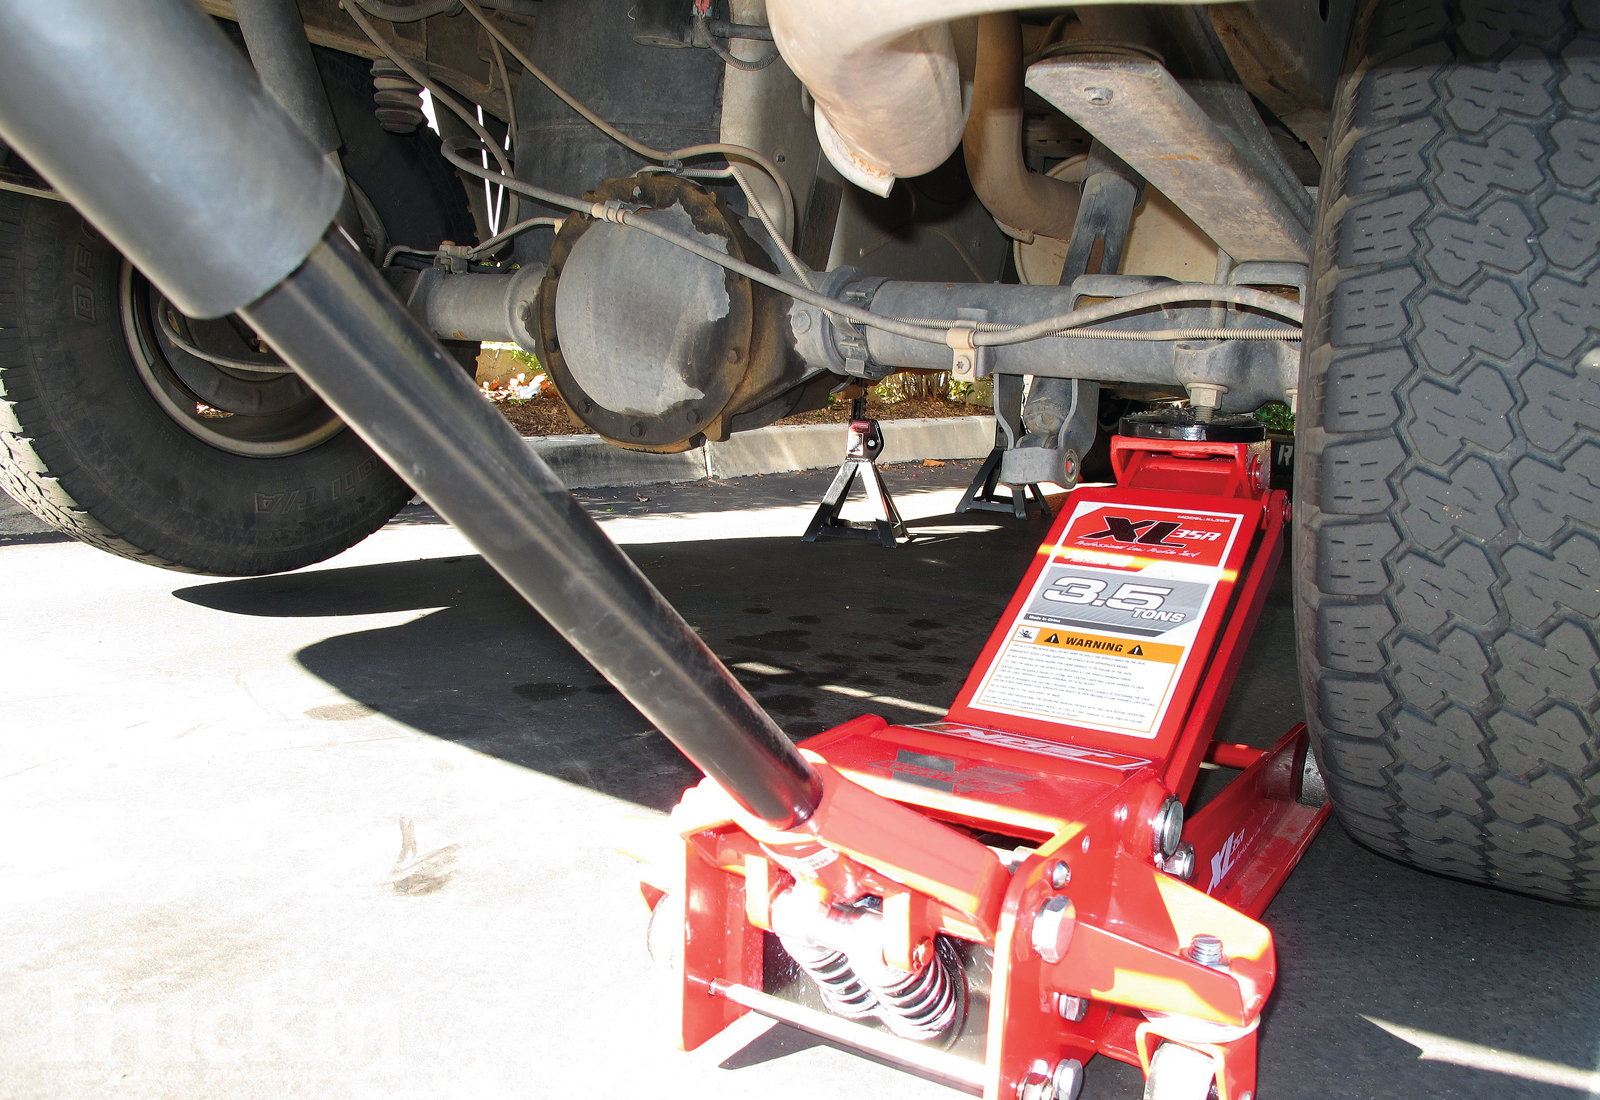 Index3 moreover Ford F150 F250 How To Install A Tow Hook 357074 together with 1372658 2011 F 150 Problem Wiring Up Aftermarket Stereo No Power To Unit furthermore Watch likewise Question 33778. on 2011 f250 wiring diagram